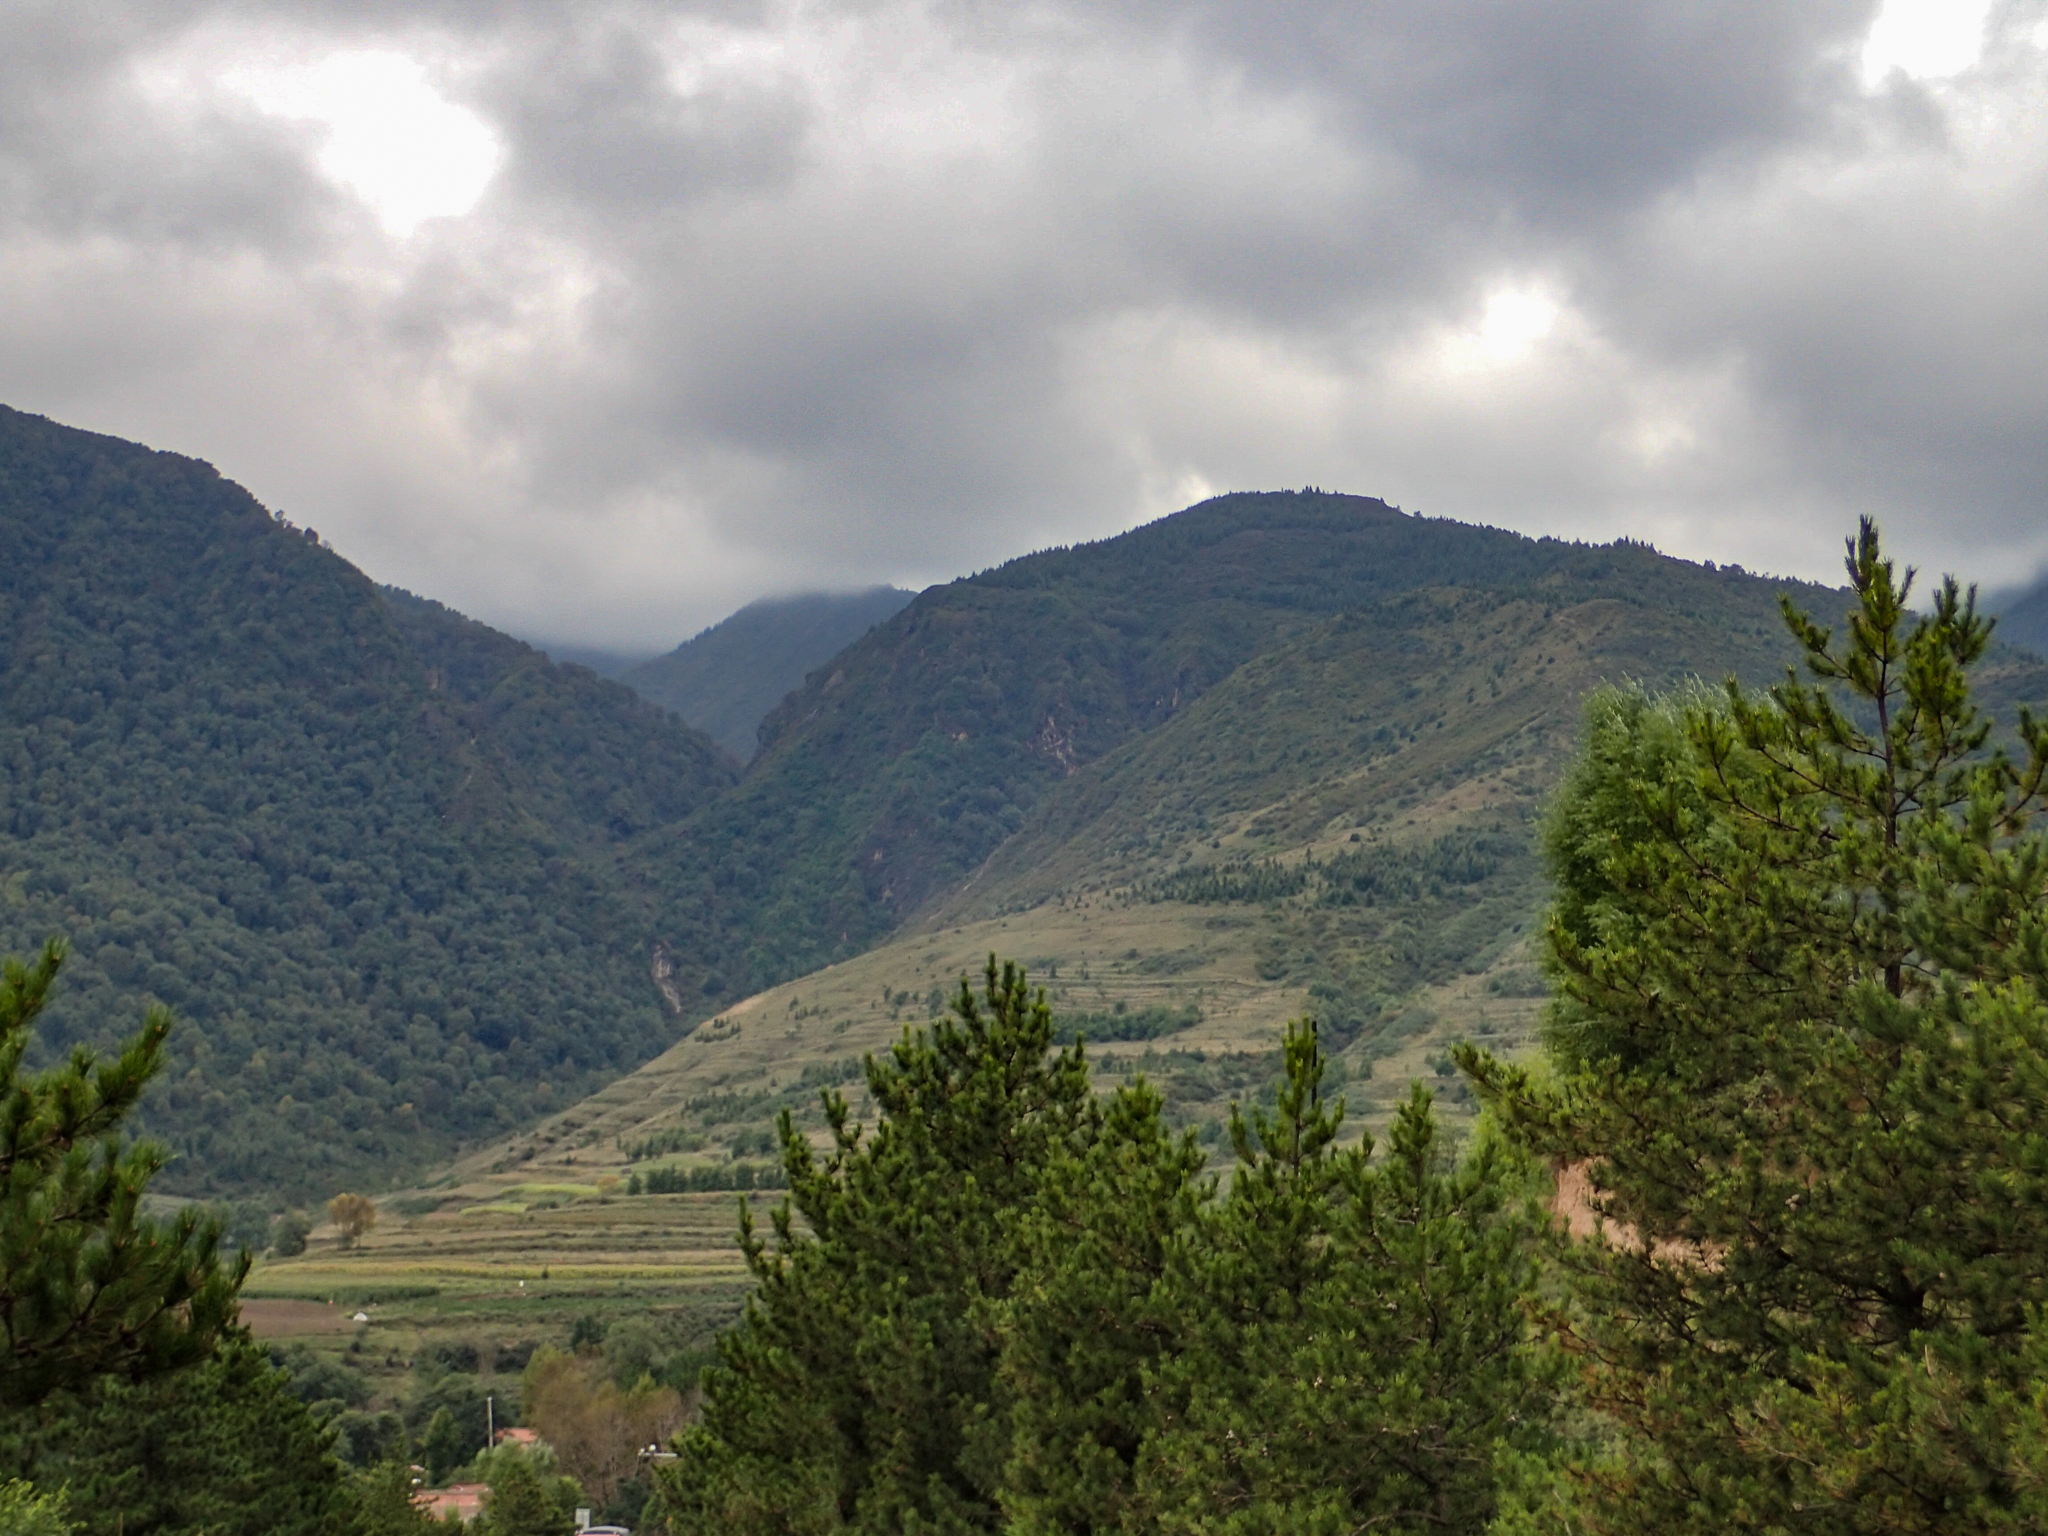 Mountains and terraced farming